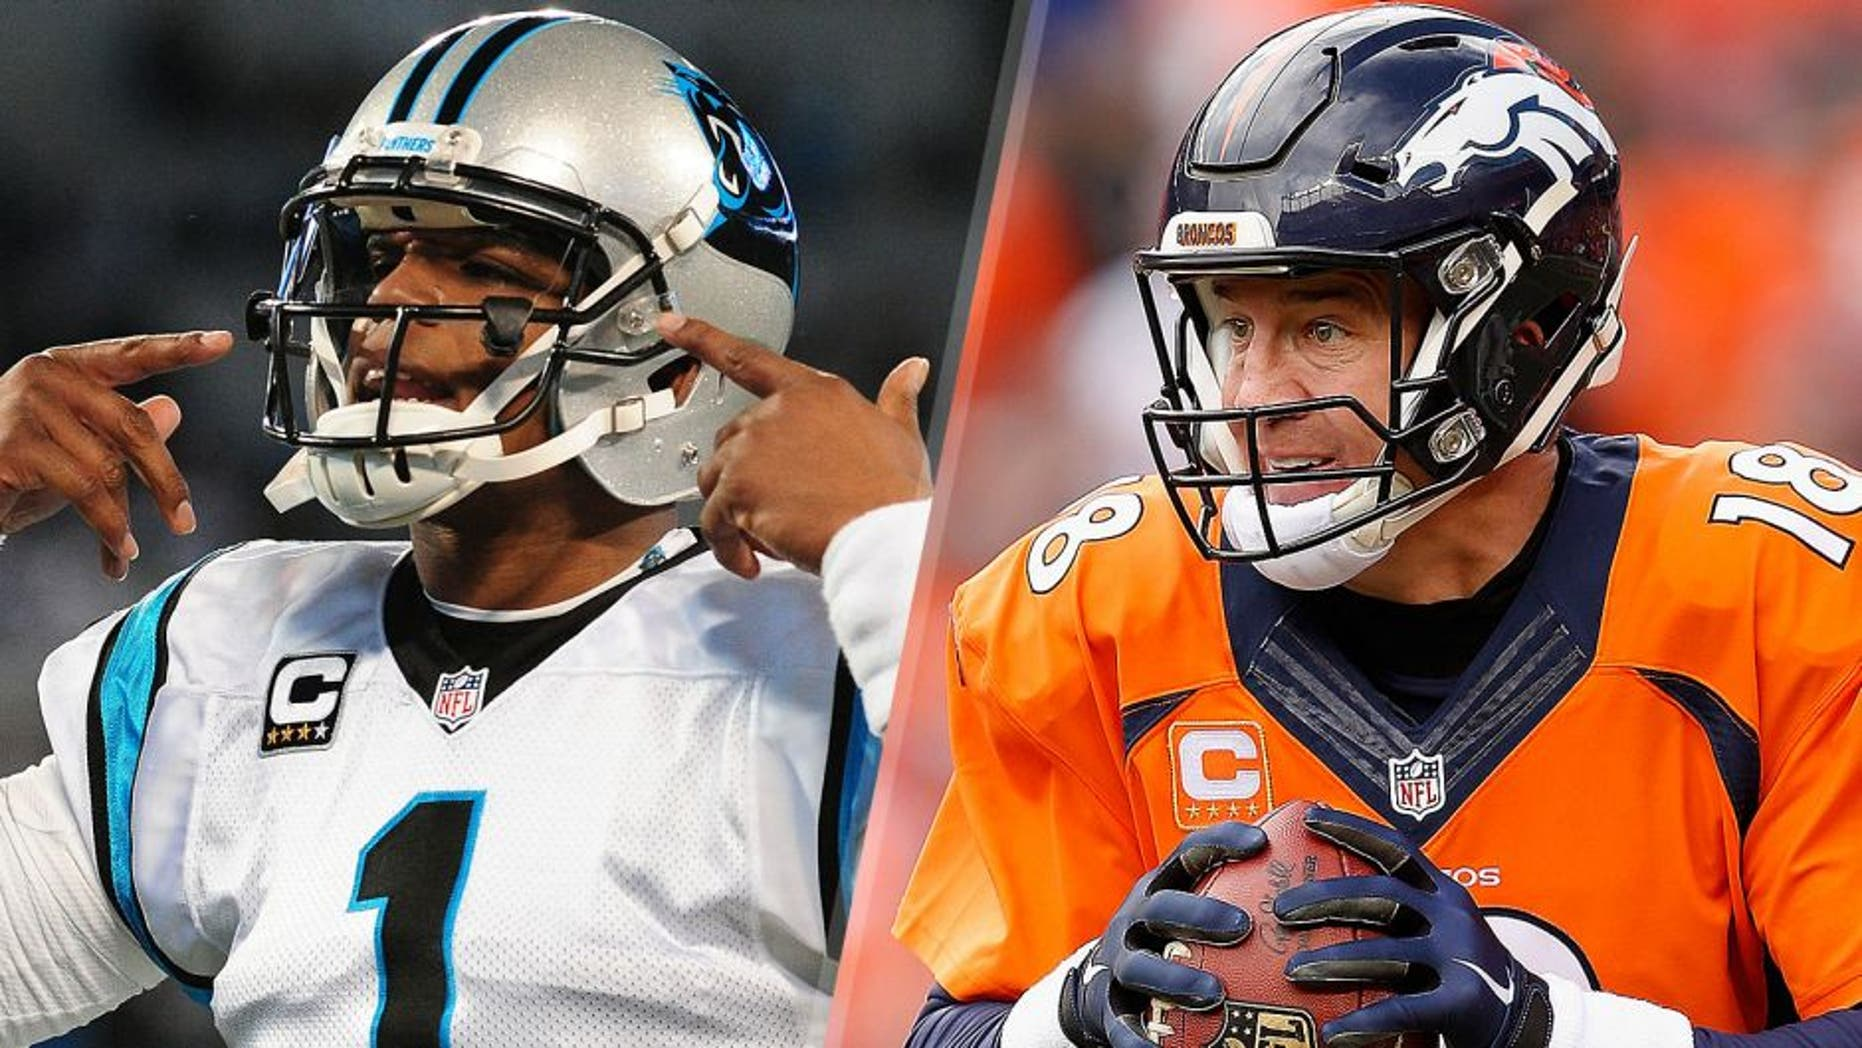 Cam Newton #1 of the Carolina Panthers warms up before the NFC Championship Game against the Arizona Cardinals at Bank Of America Stadium on January 24, 2016 in Charlotte, North Carolina. (Photo by Scott Cunningham/Getty Images) Quarterback Peyton Manning #18 of the Denver Broncos looks to pass during the AFC Championship game against the New England Patriots at Sports Authority Field at Mile High on January 24, 2016 in Denver, Colorado. The Broncos defeated the Patriots 20-18. (Photo by Christian Petersen/Getty Images)